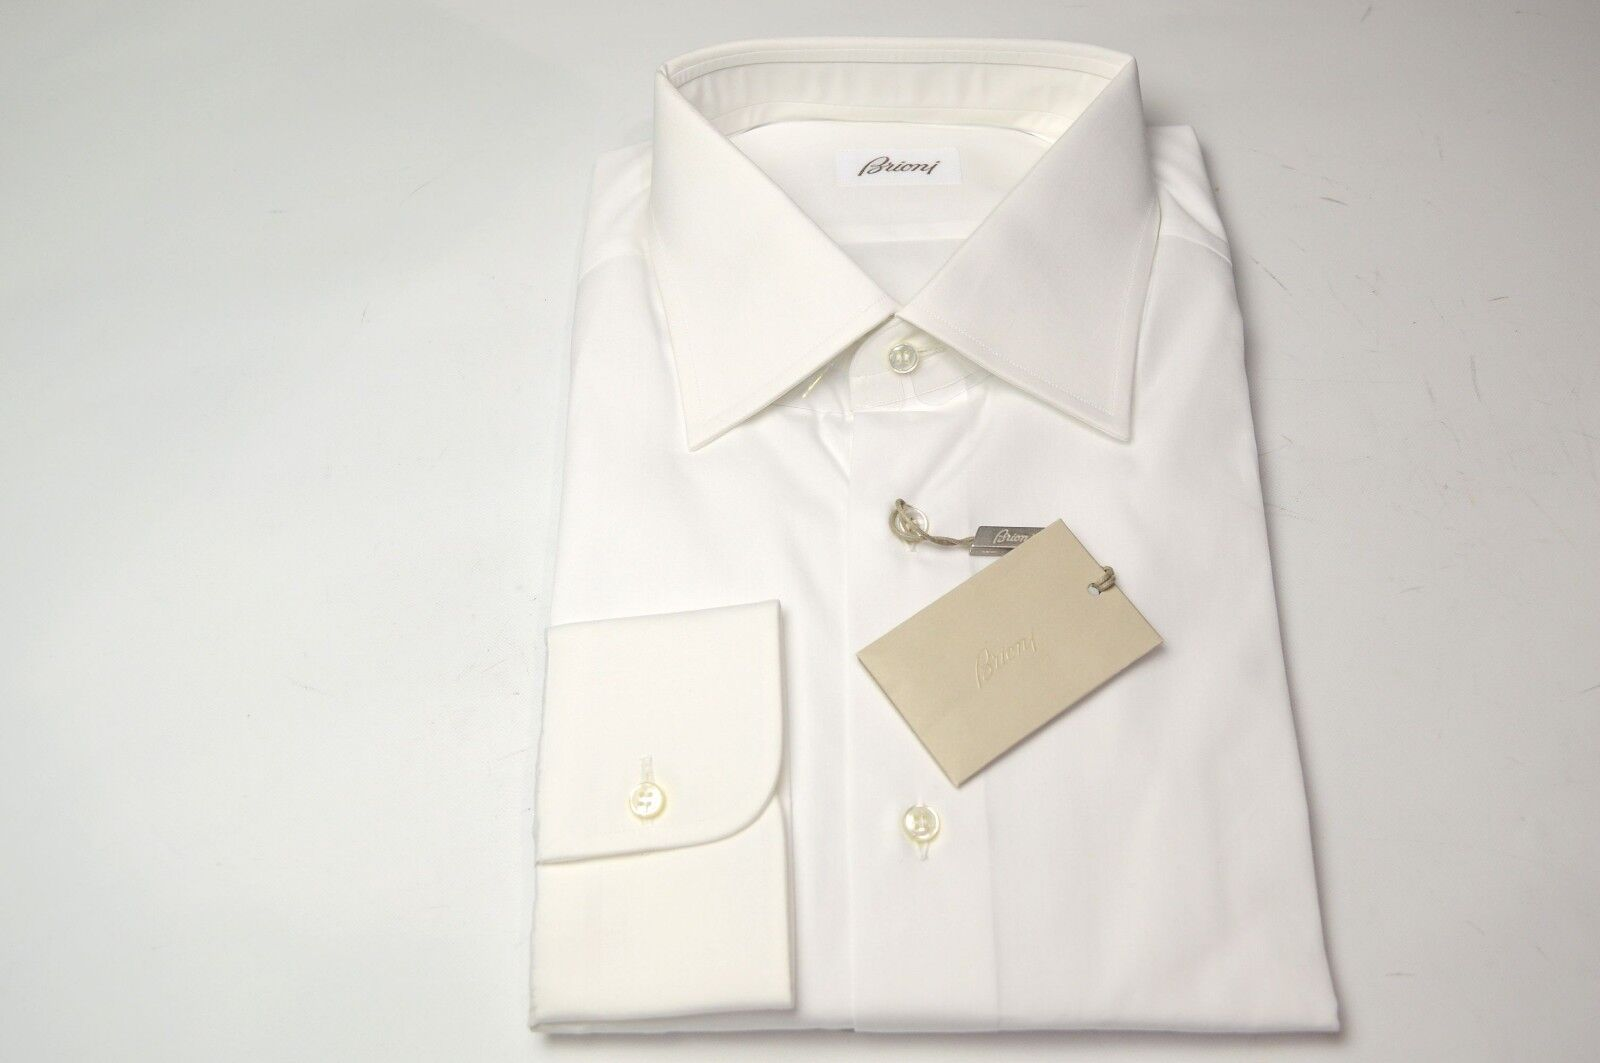 NEW  BRIONI Dress  SHIRT 100% Cotton Größe 15.75 Us 40 Eu  (ARA133)